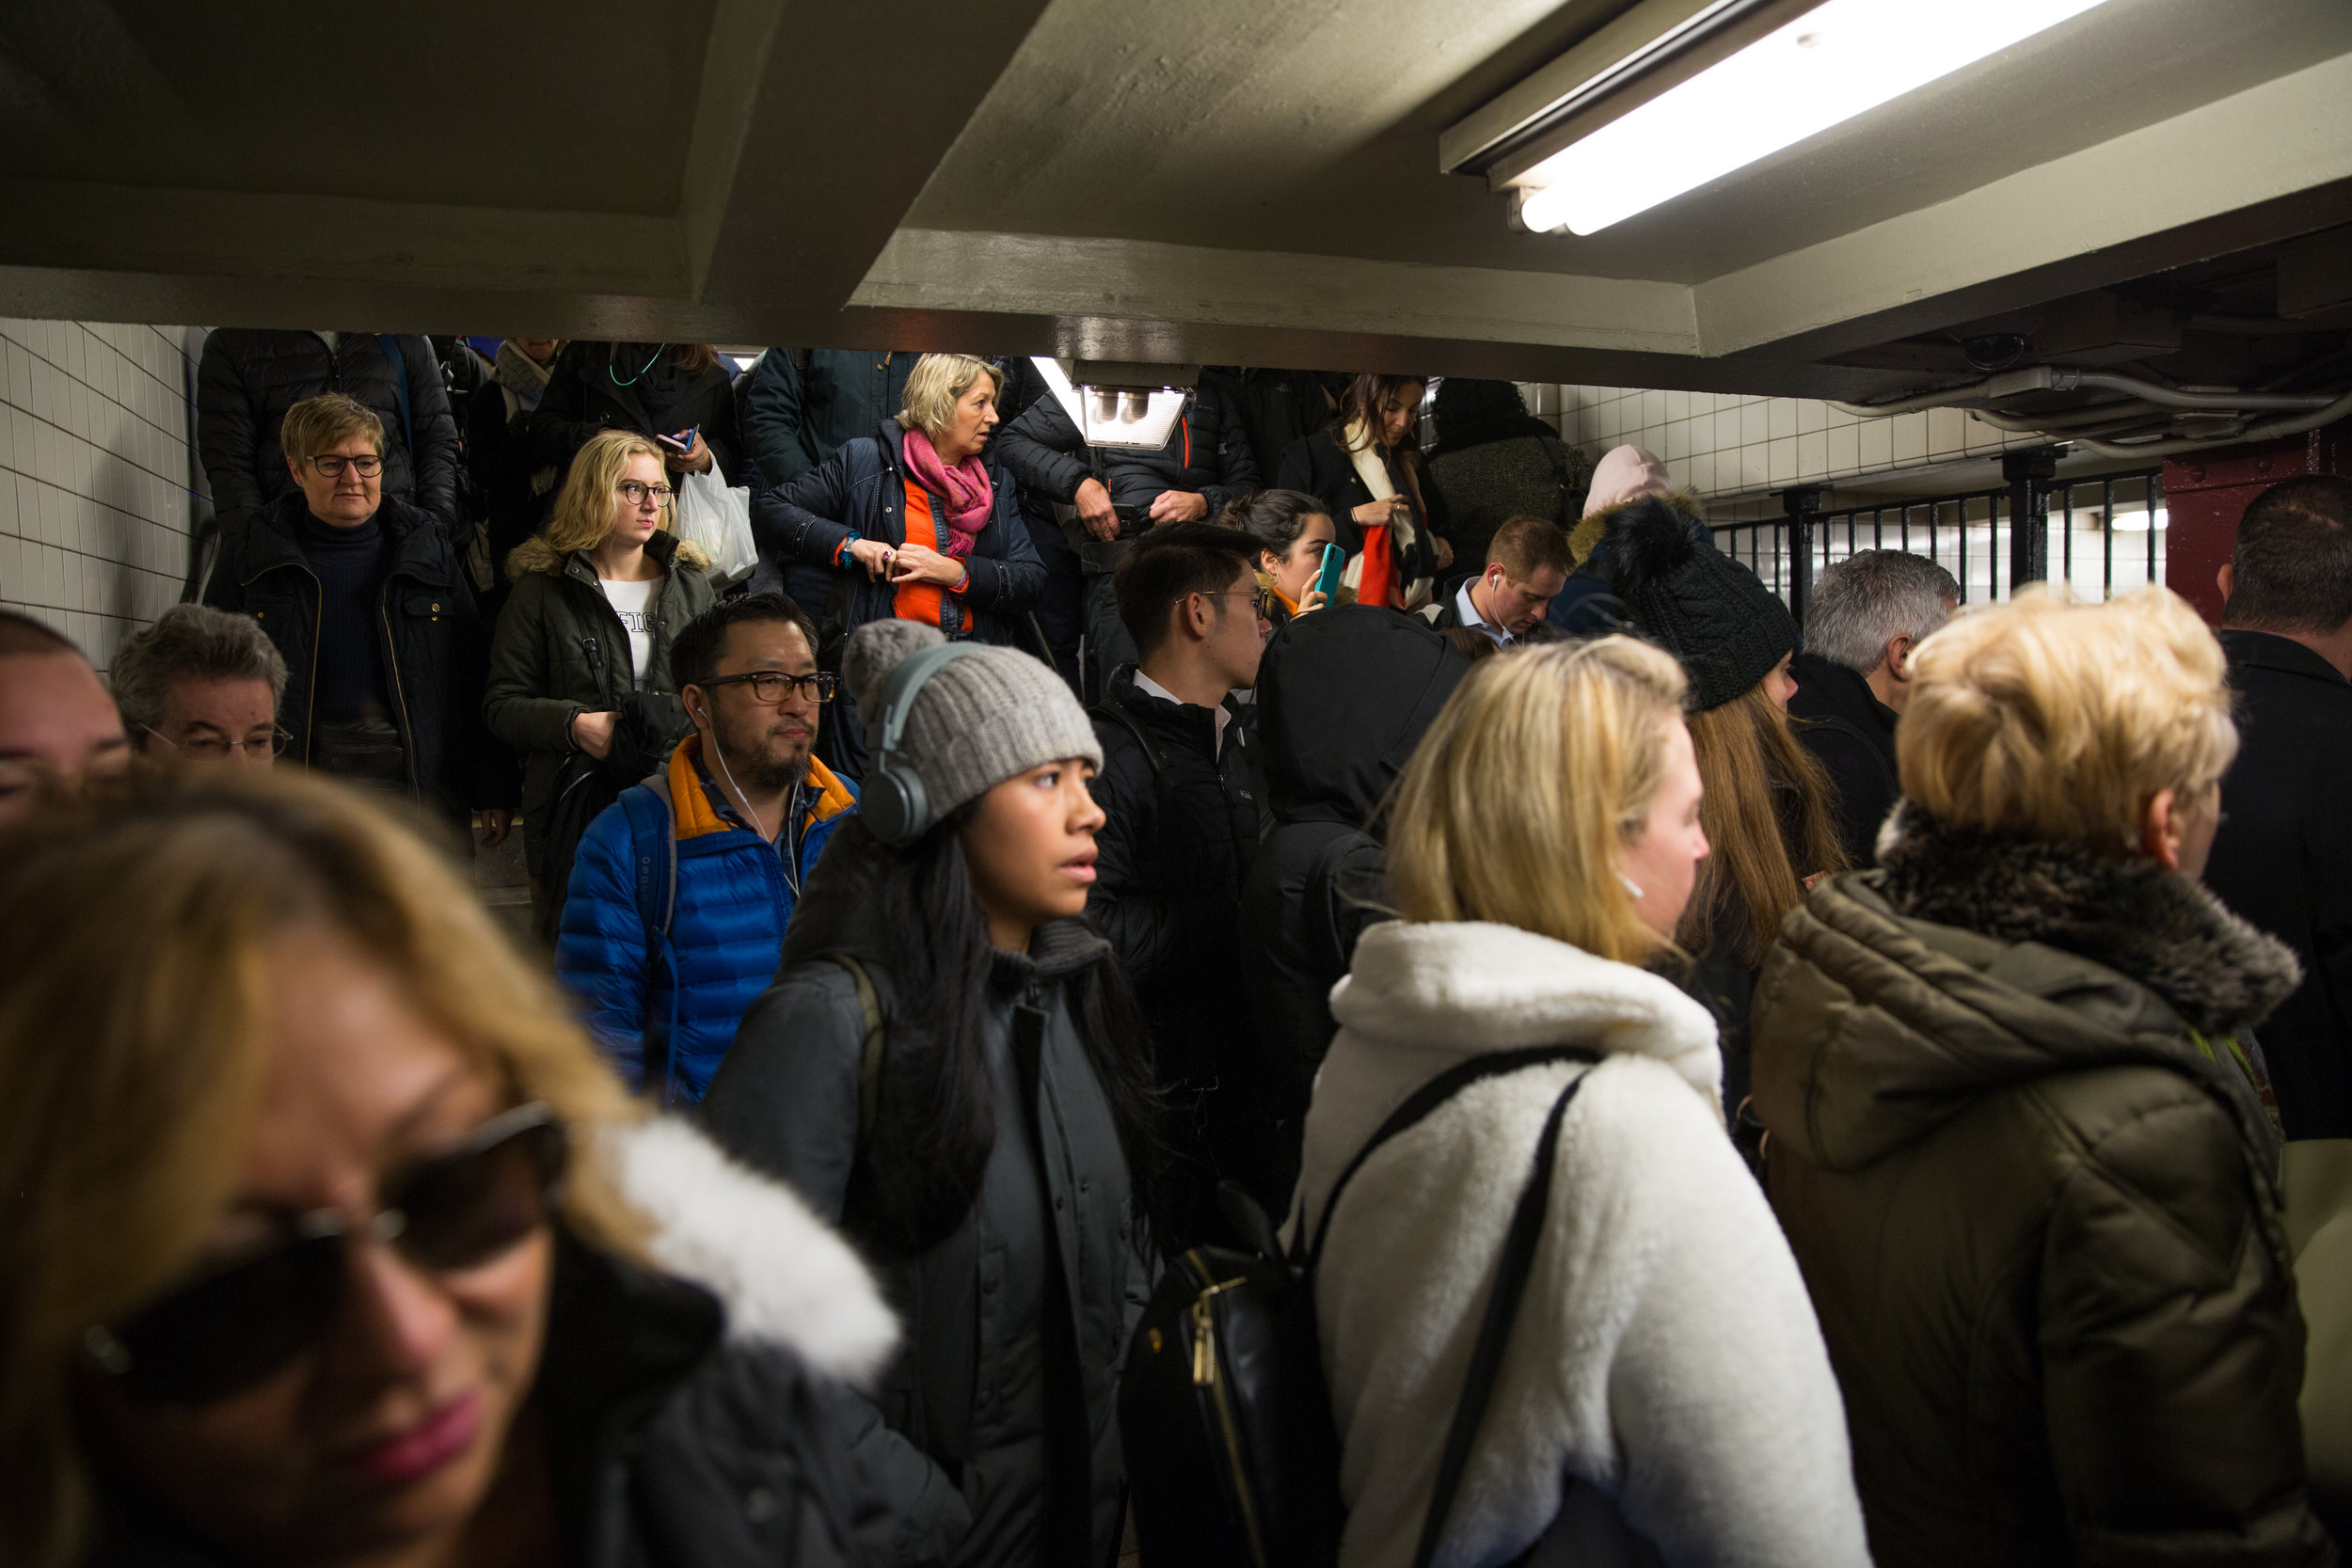 L TRAIN SHUTDOWN — JASON BERGMAN